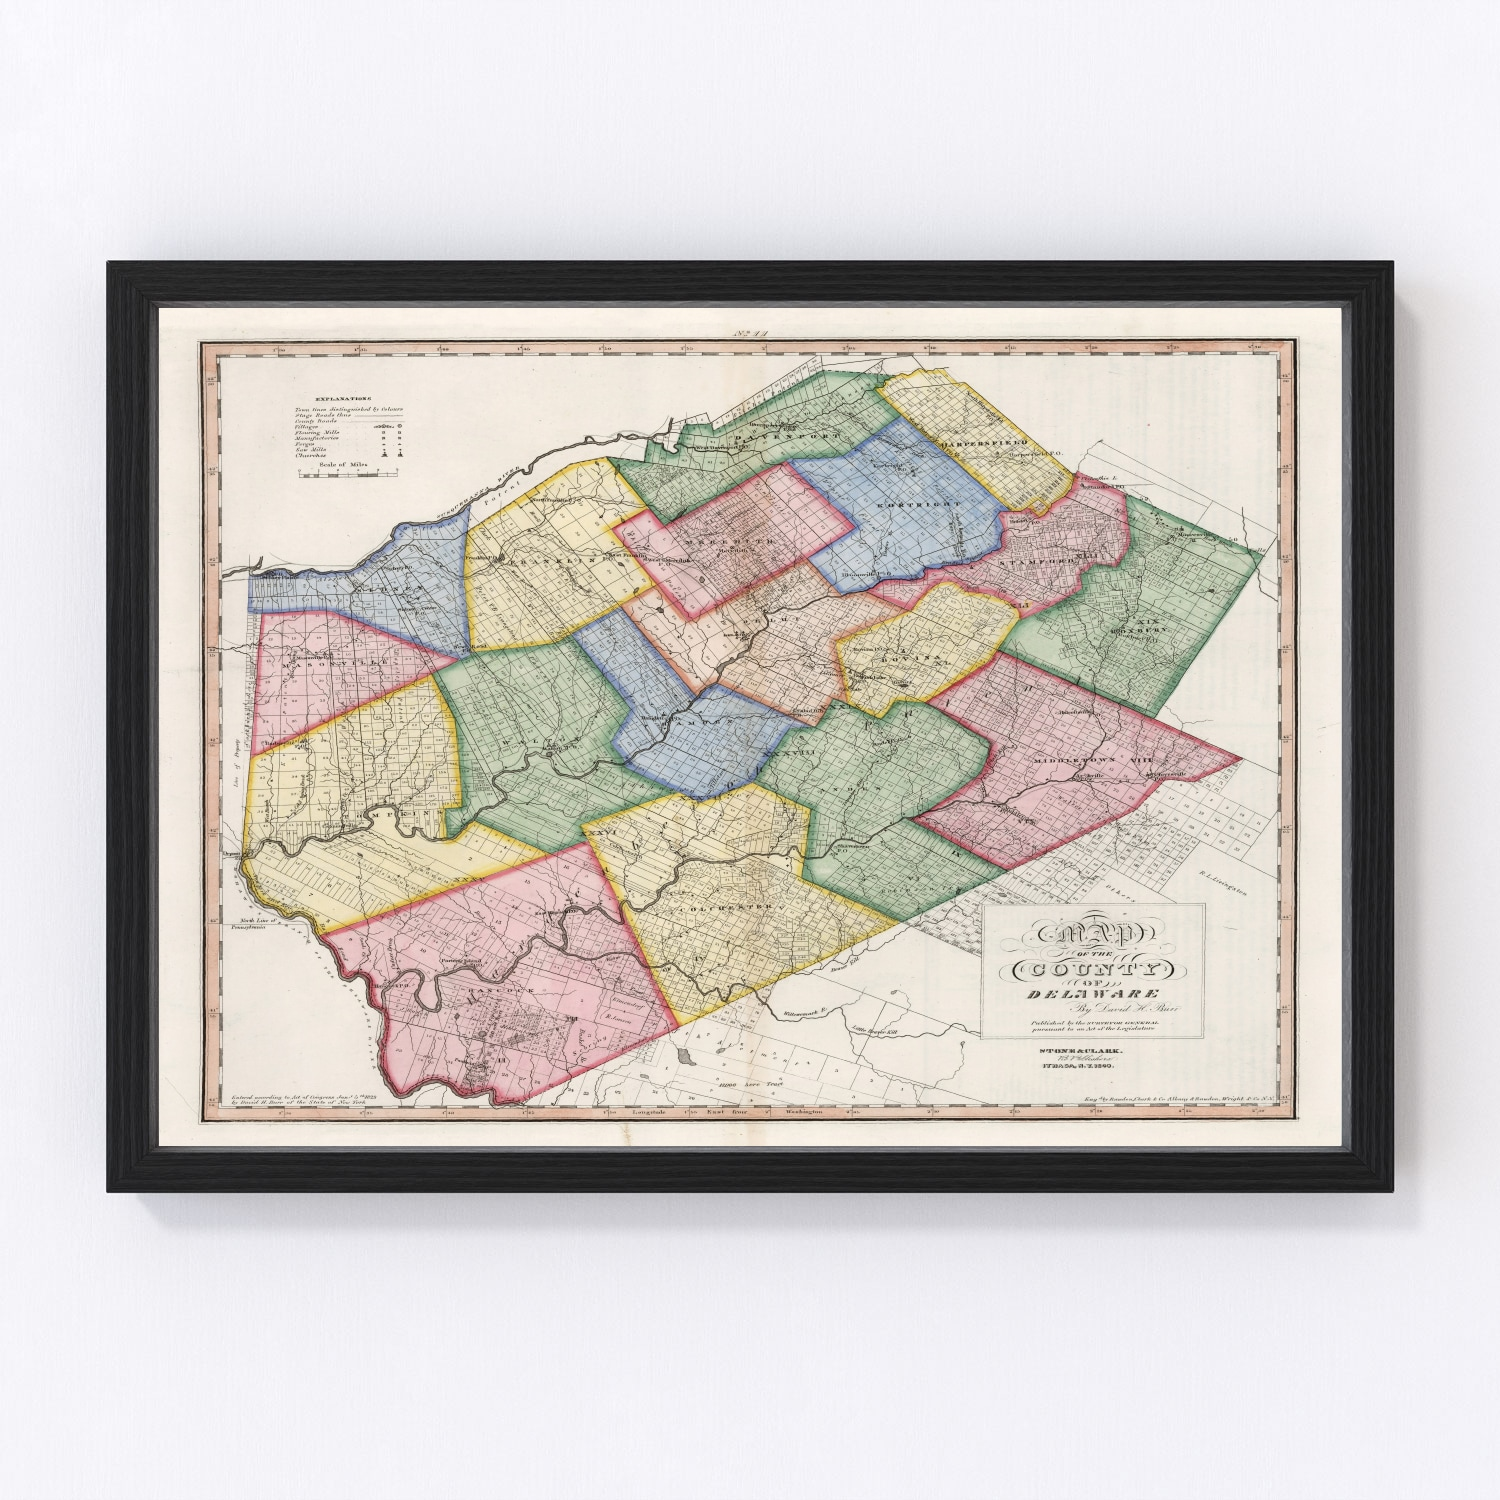 Vintage Map of Delaware County New York, 1840